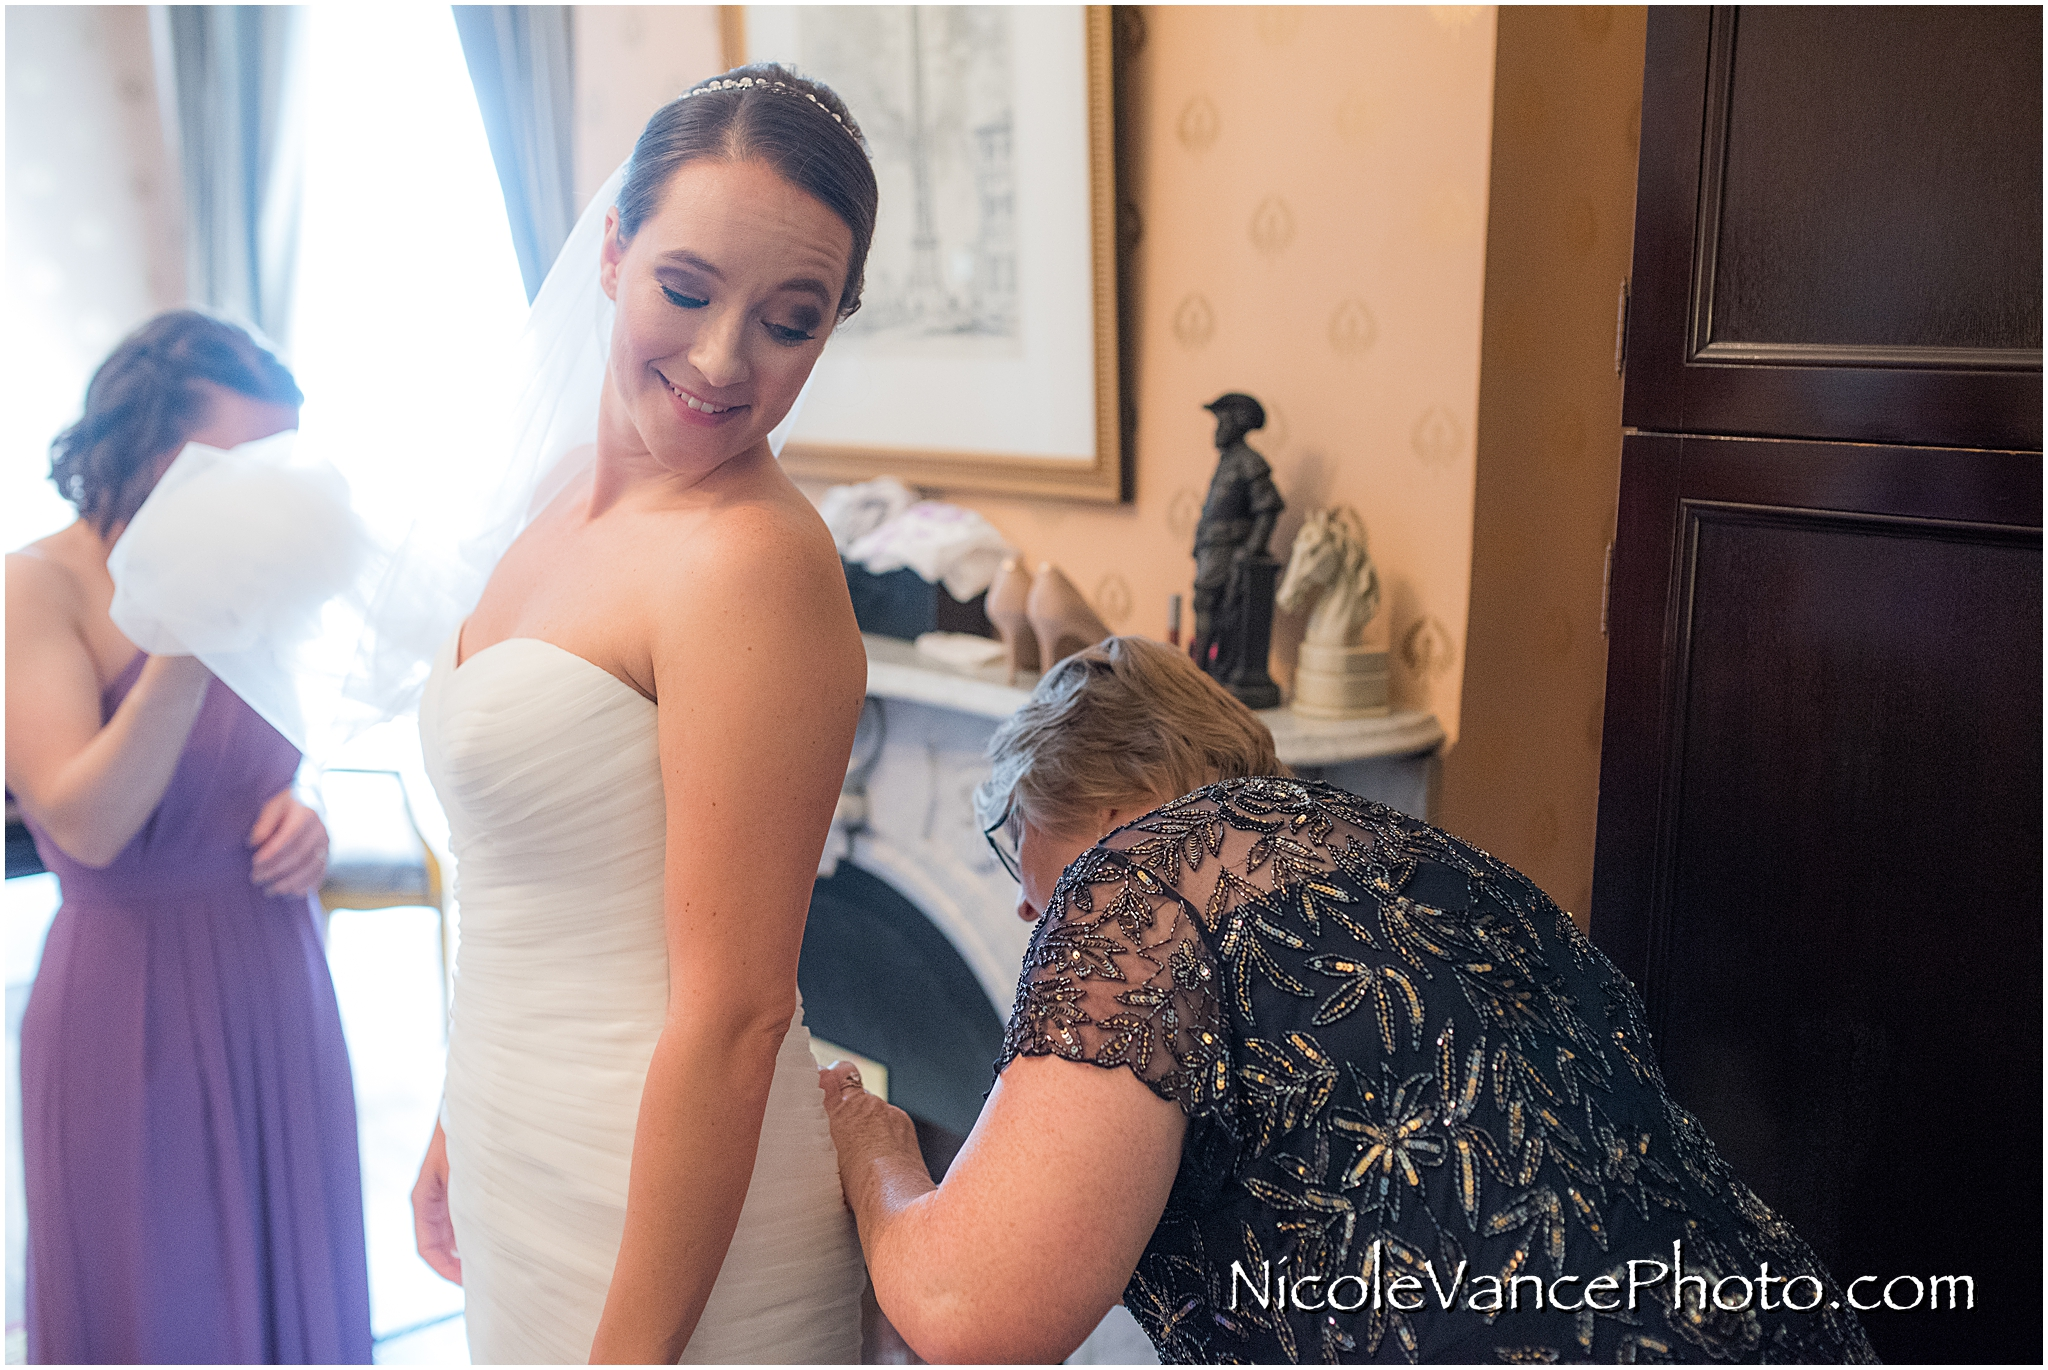 The bride's mom carefully fastens her buttons as she helps her daughter get ready.